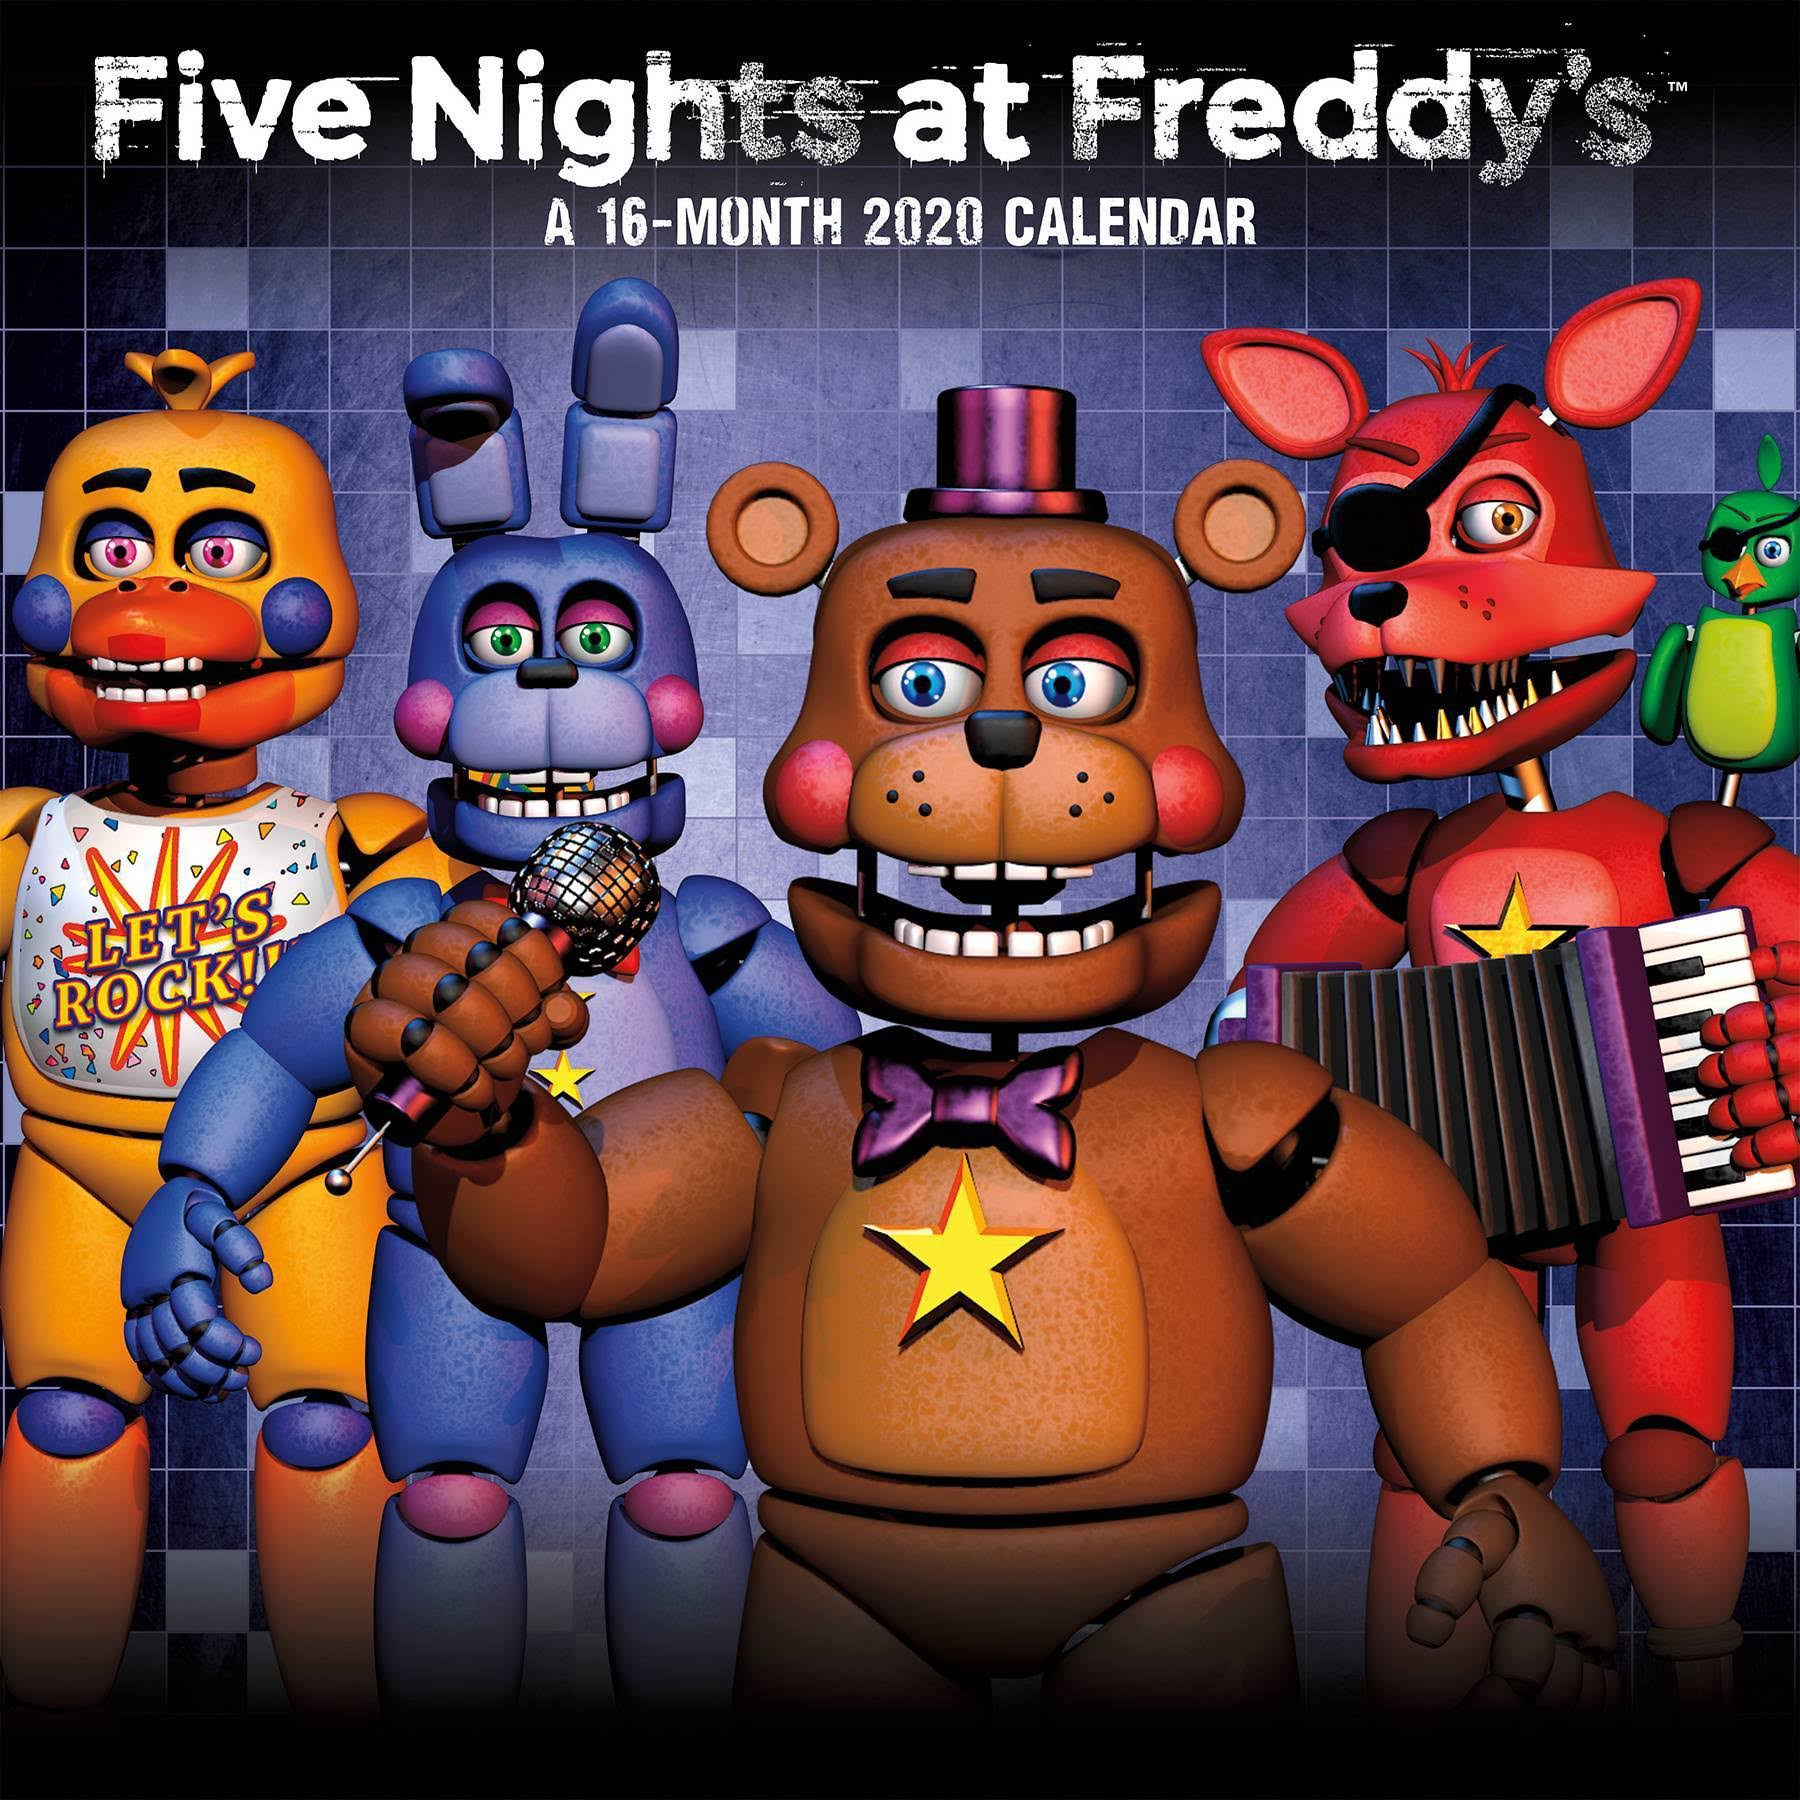 Trends International 2020 Five Nights at Freddy's Wall Wall Calendar